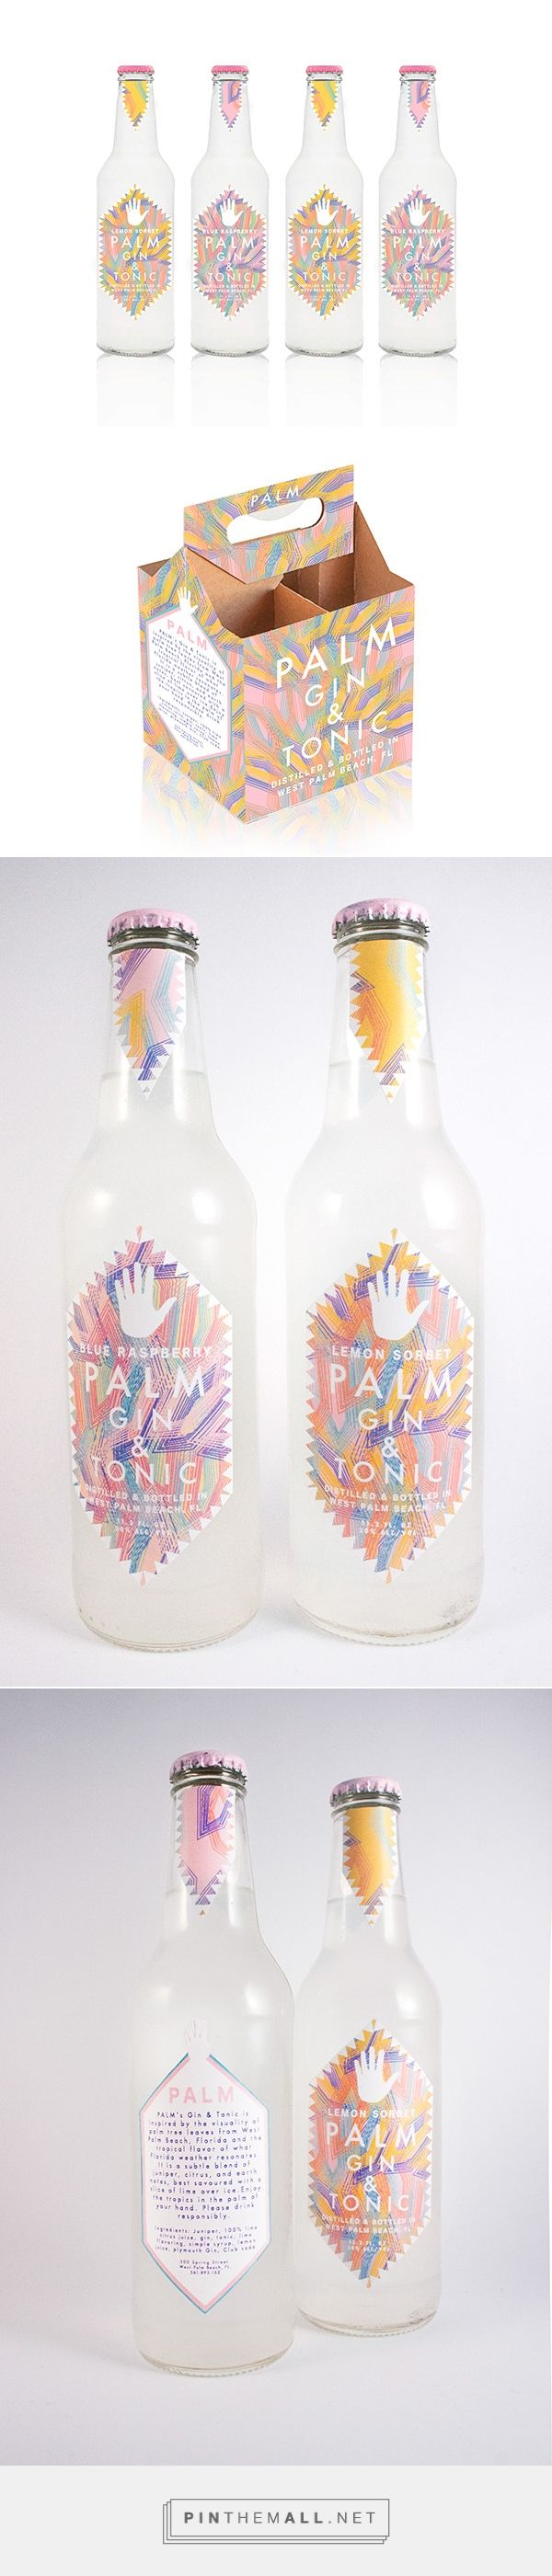 Hometown Gin and Tonic packaging on Pratt Portfolios by Jane Jun curated by Packaging Diva PD. Fun packaging project.